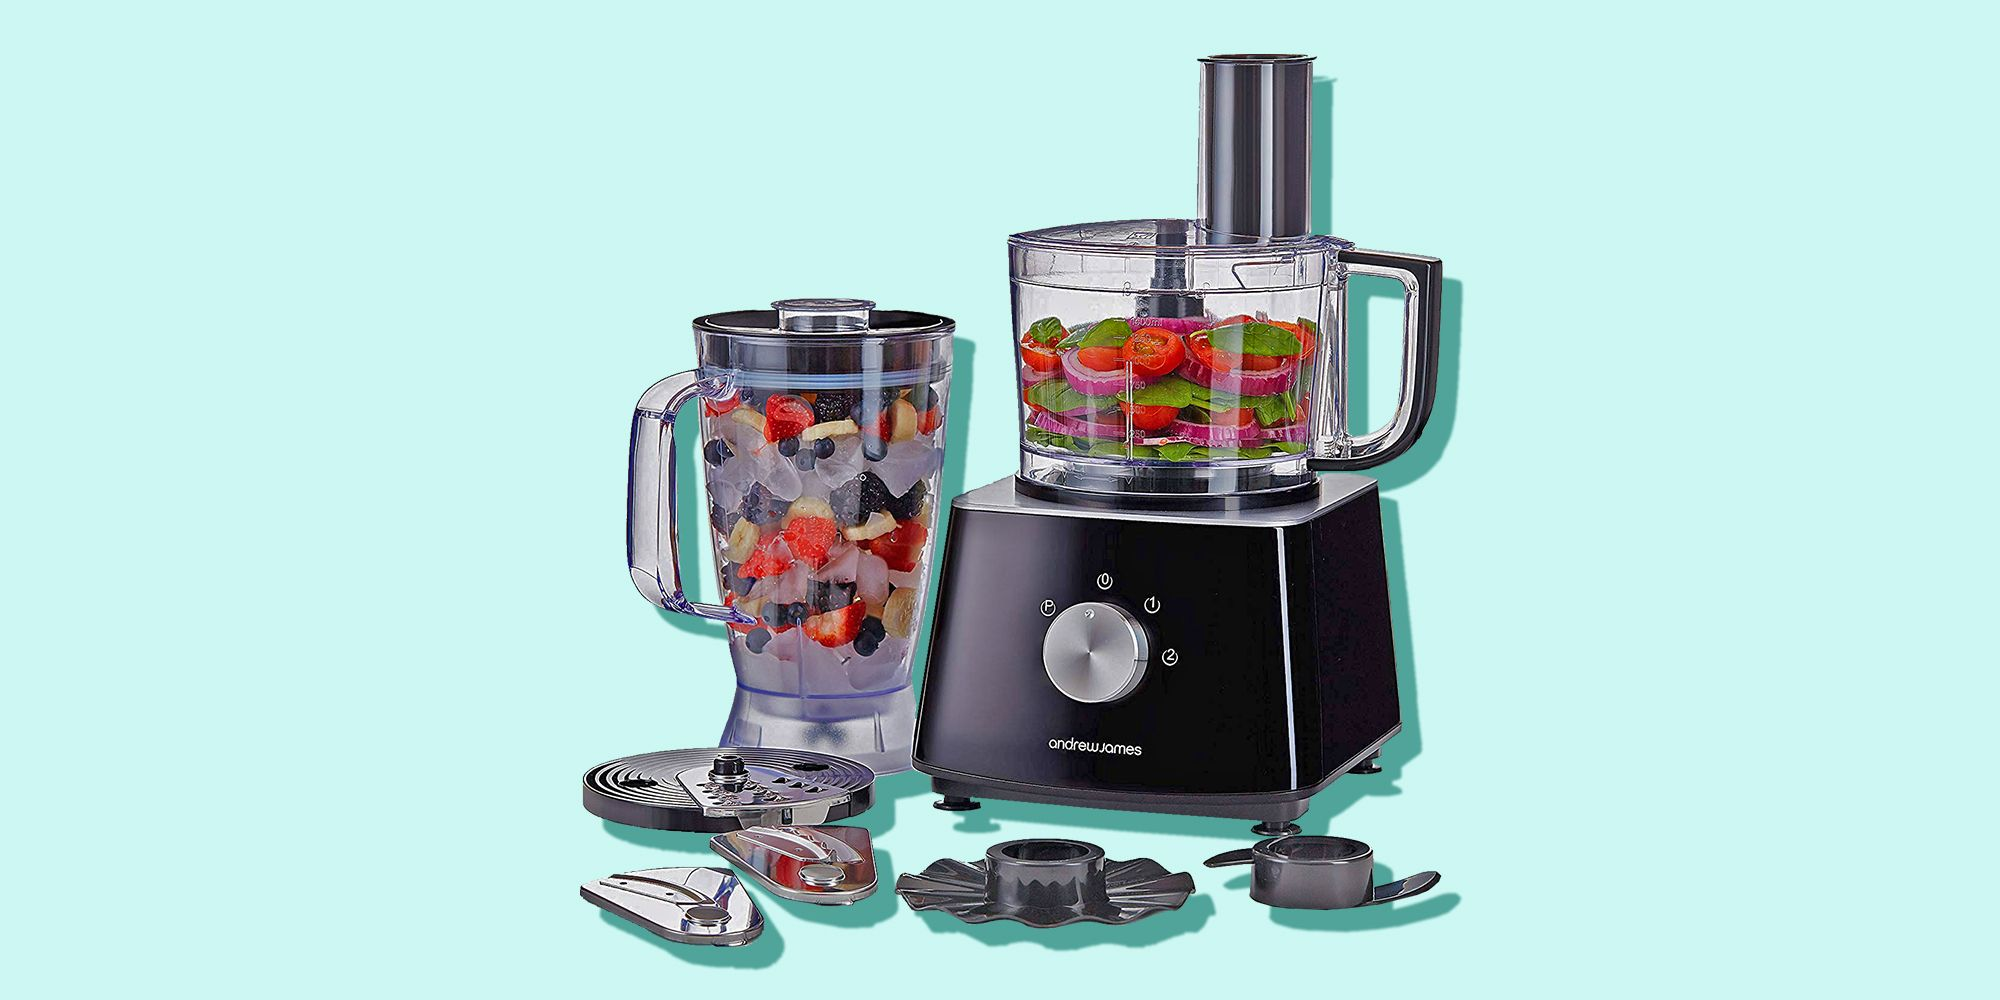 This £50 food processor is a GHI winner